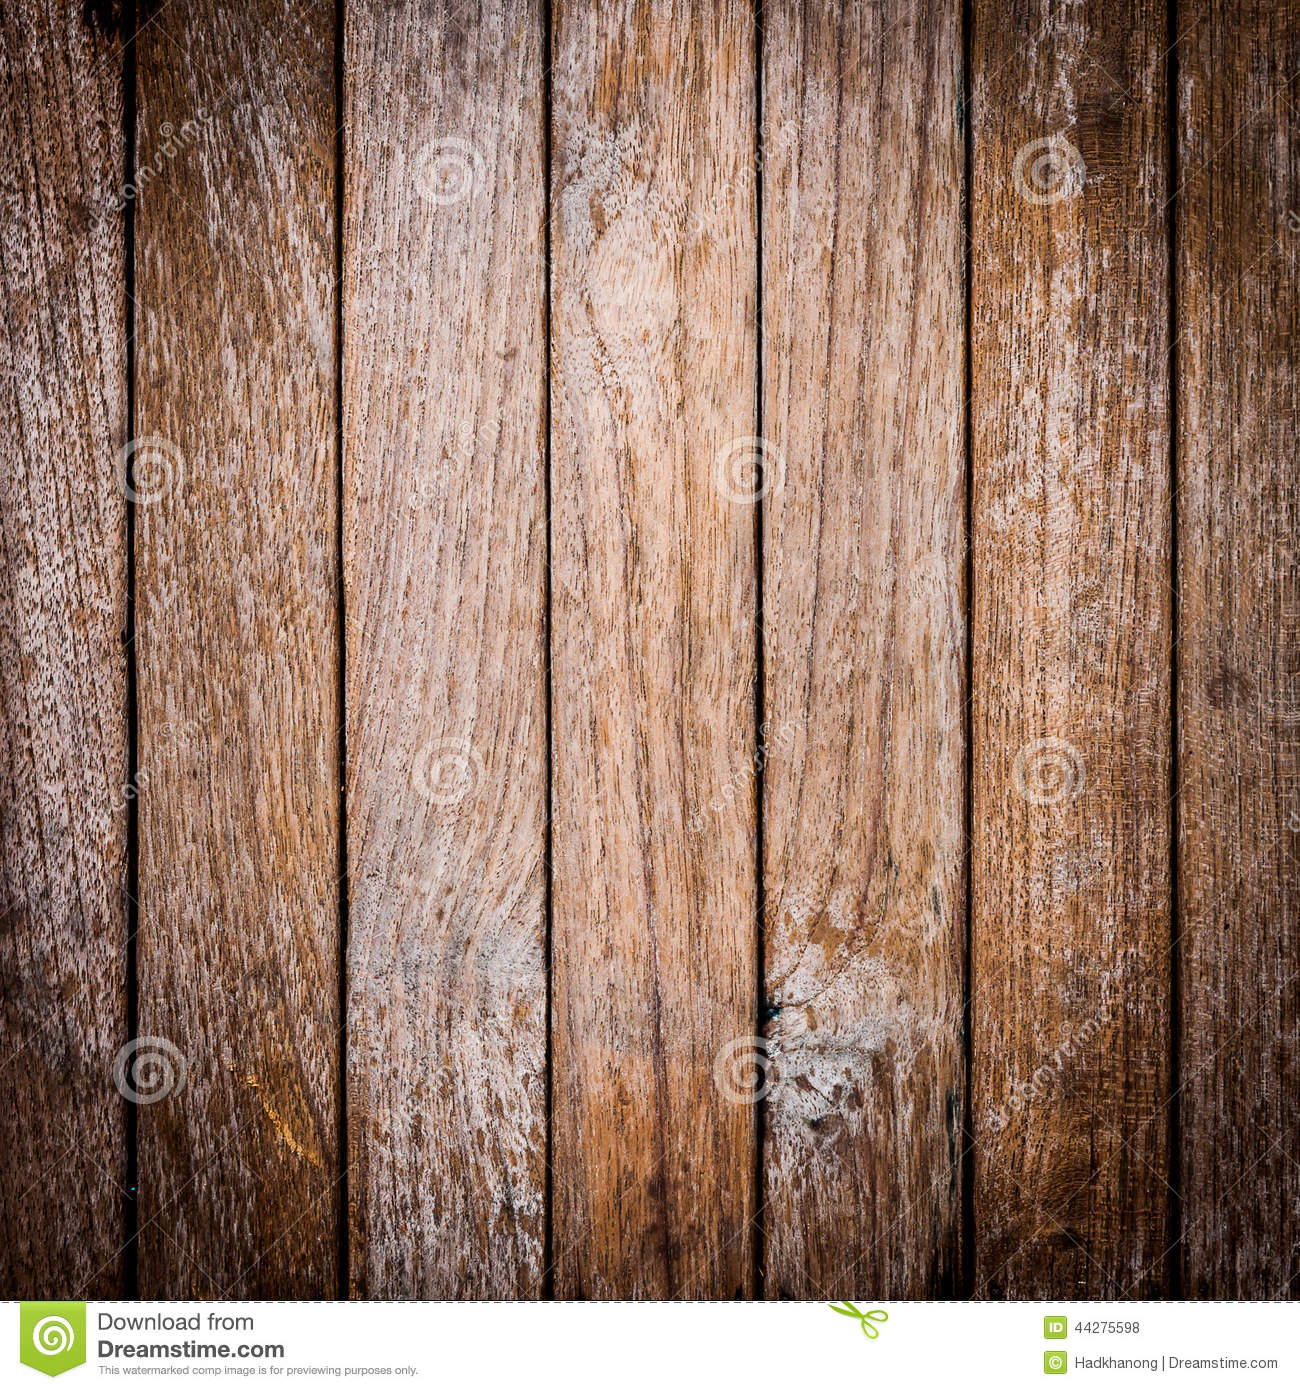 Texture And Color Of Old Wood Panel Stock Photo Image